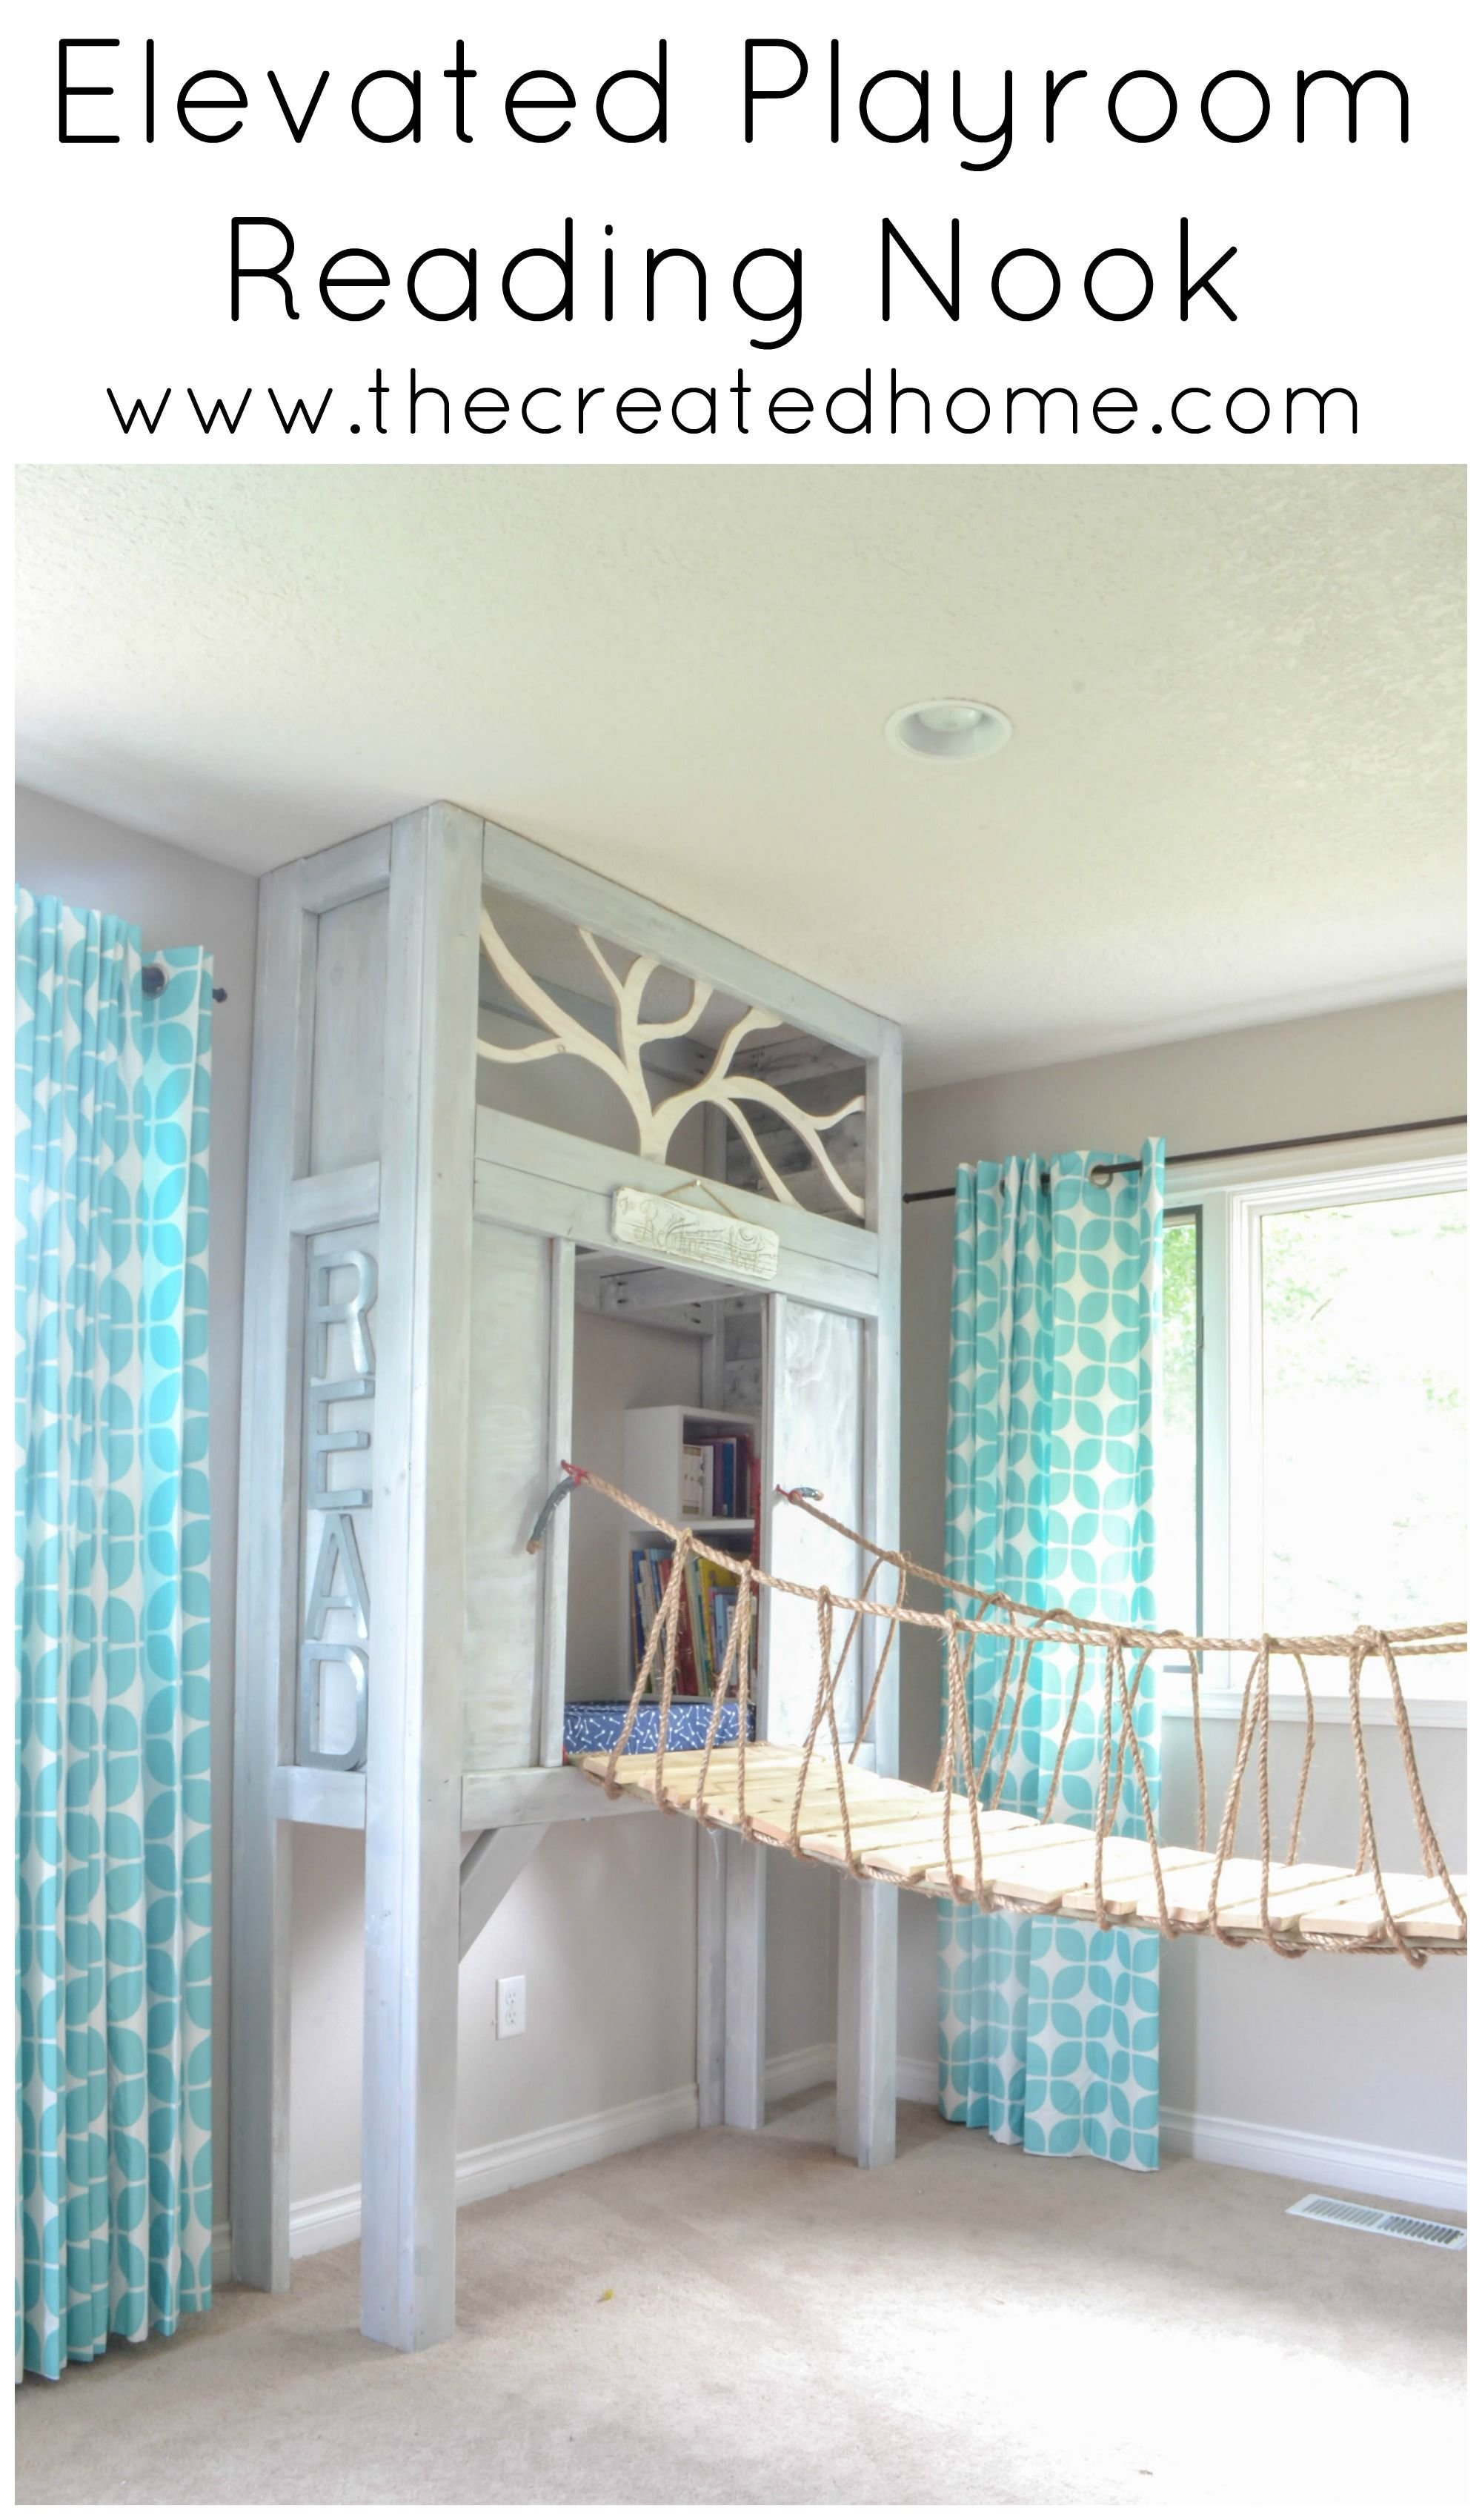 Best How To Build An Elevated Reading Nook Remodelaholic With Pictures